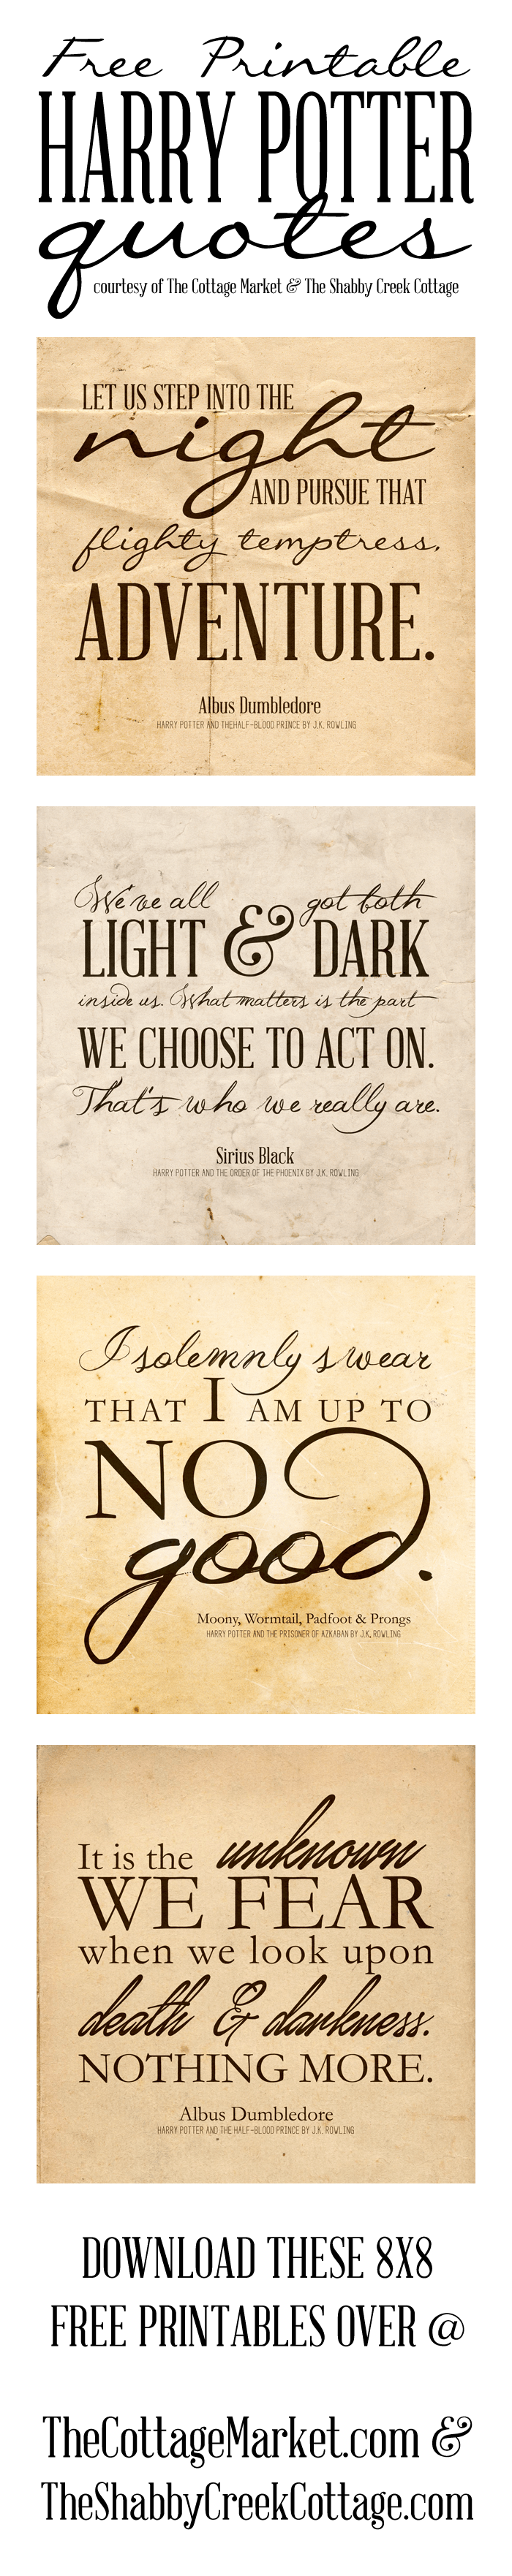 Harry Potter Printable - Harry Potter Quotes